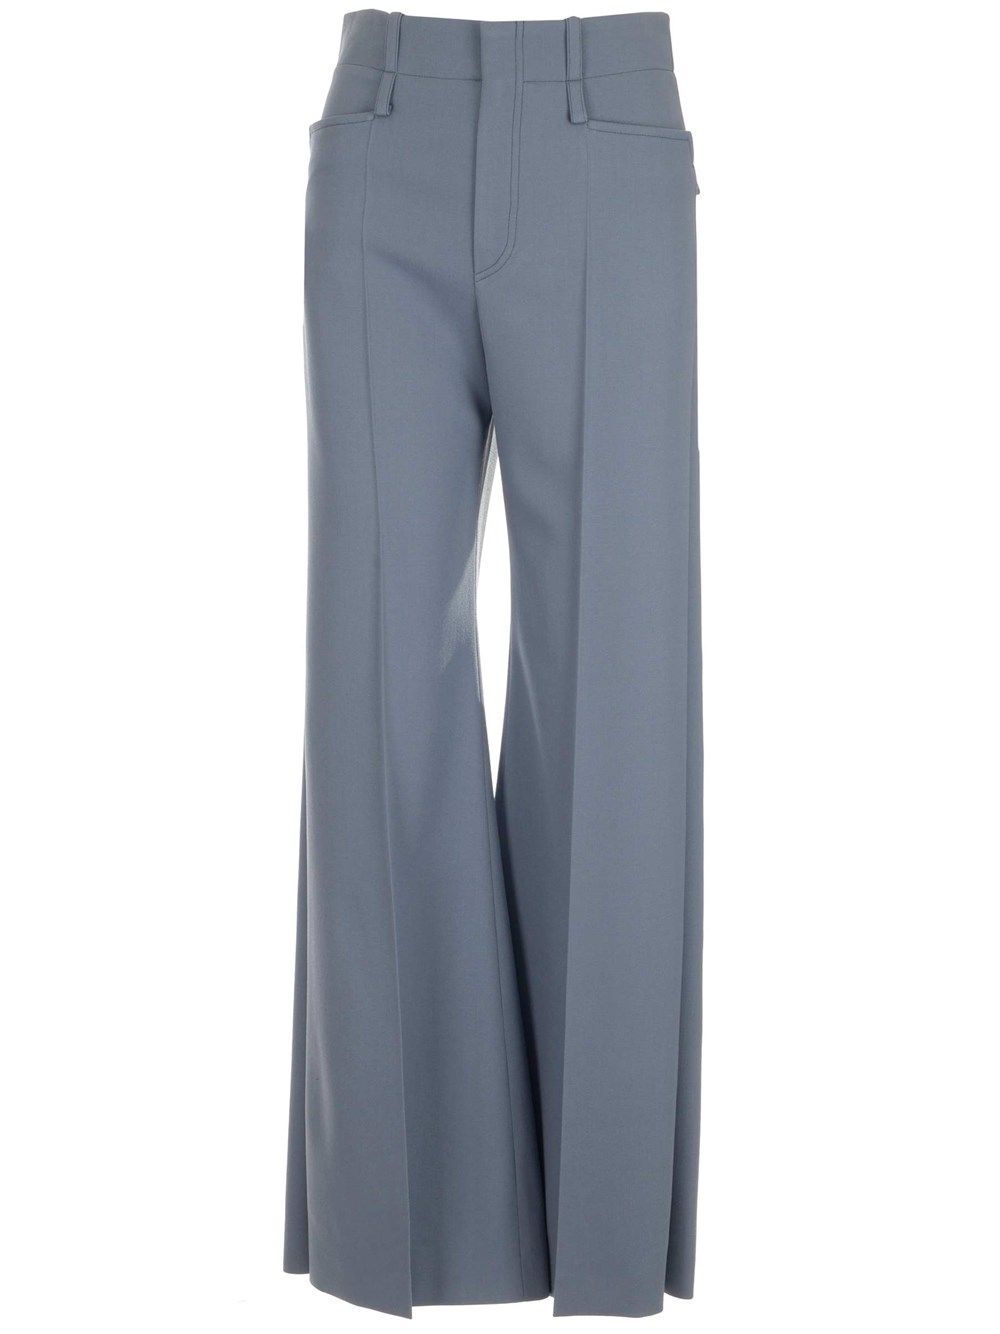 Chloé CHLOÉ WOMEN'S LIGHT BLUE OTHER MATERIALS PANTS